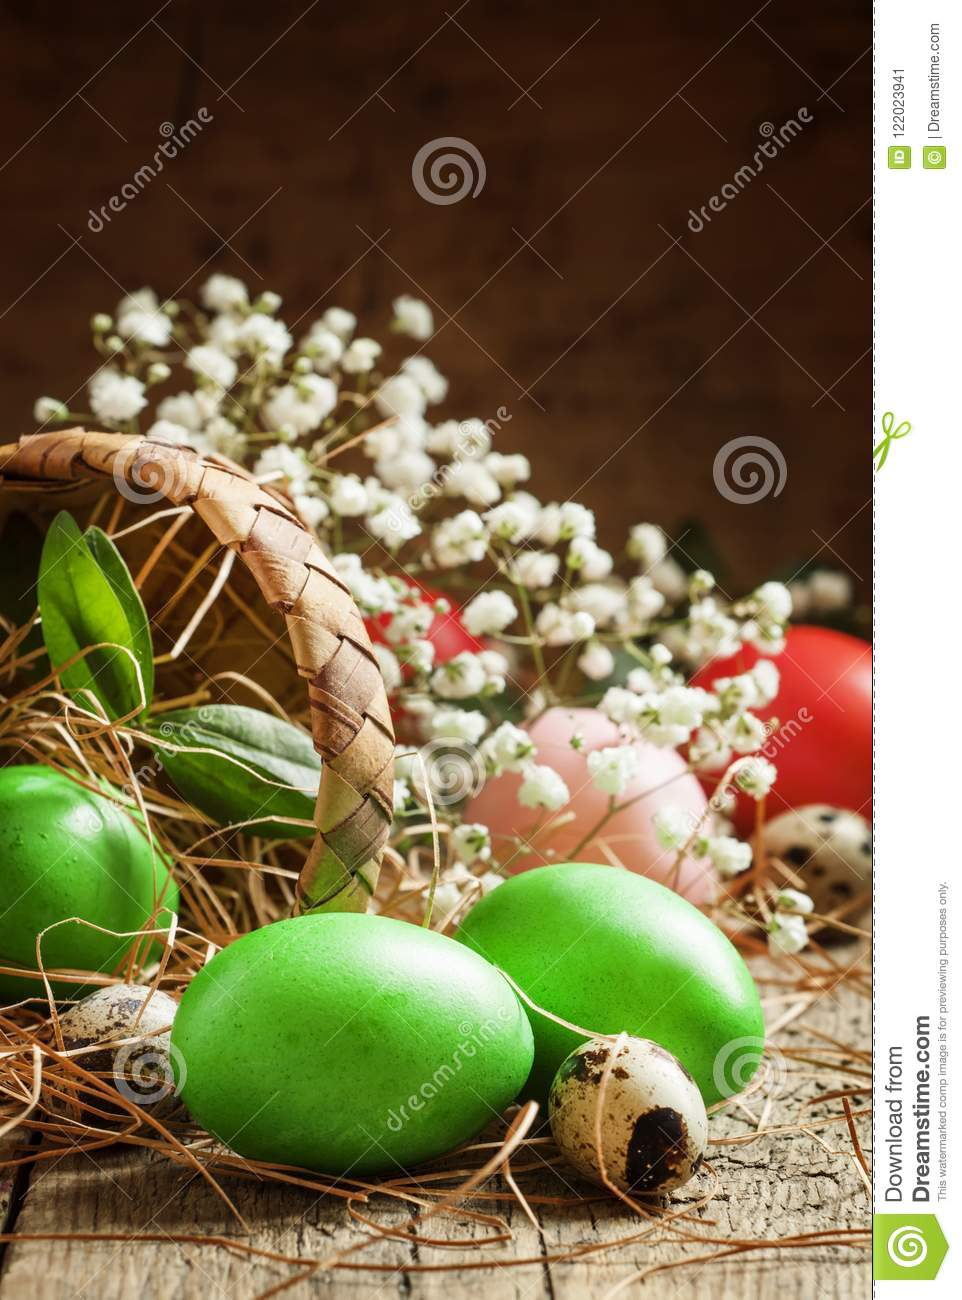 Painted green Easter eggs poured woven birch bark baskets in straw on the old wooden table in rustic style, selective focus